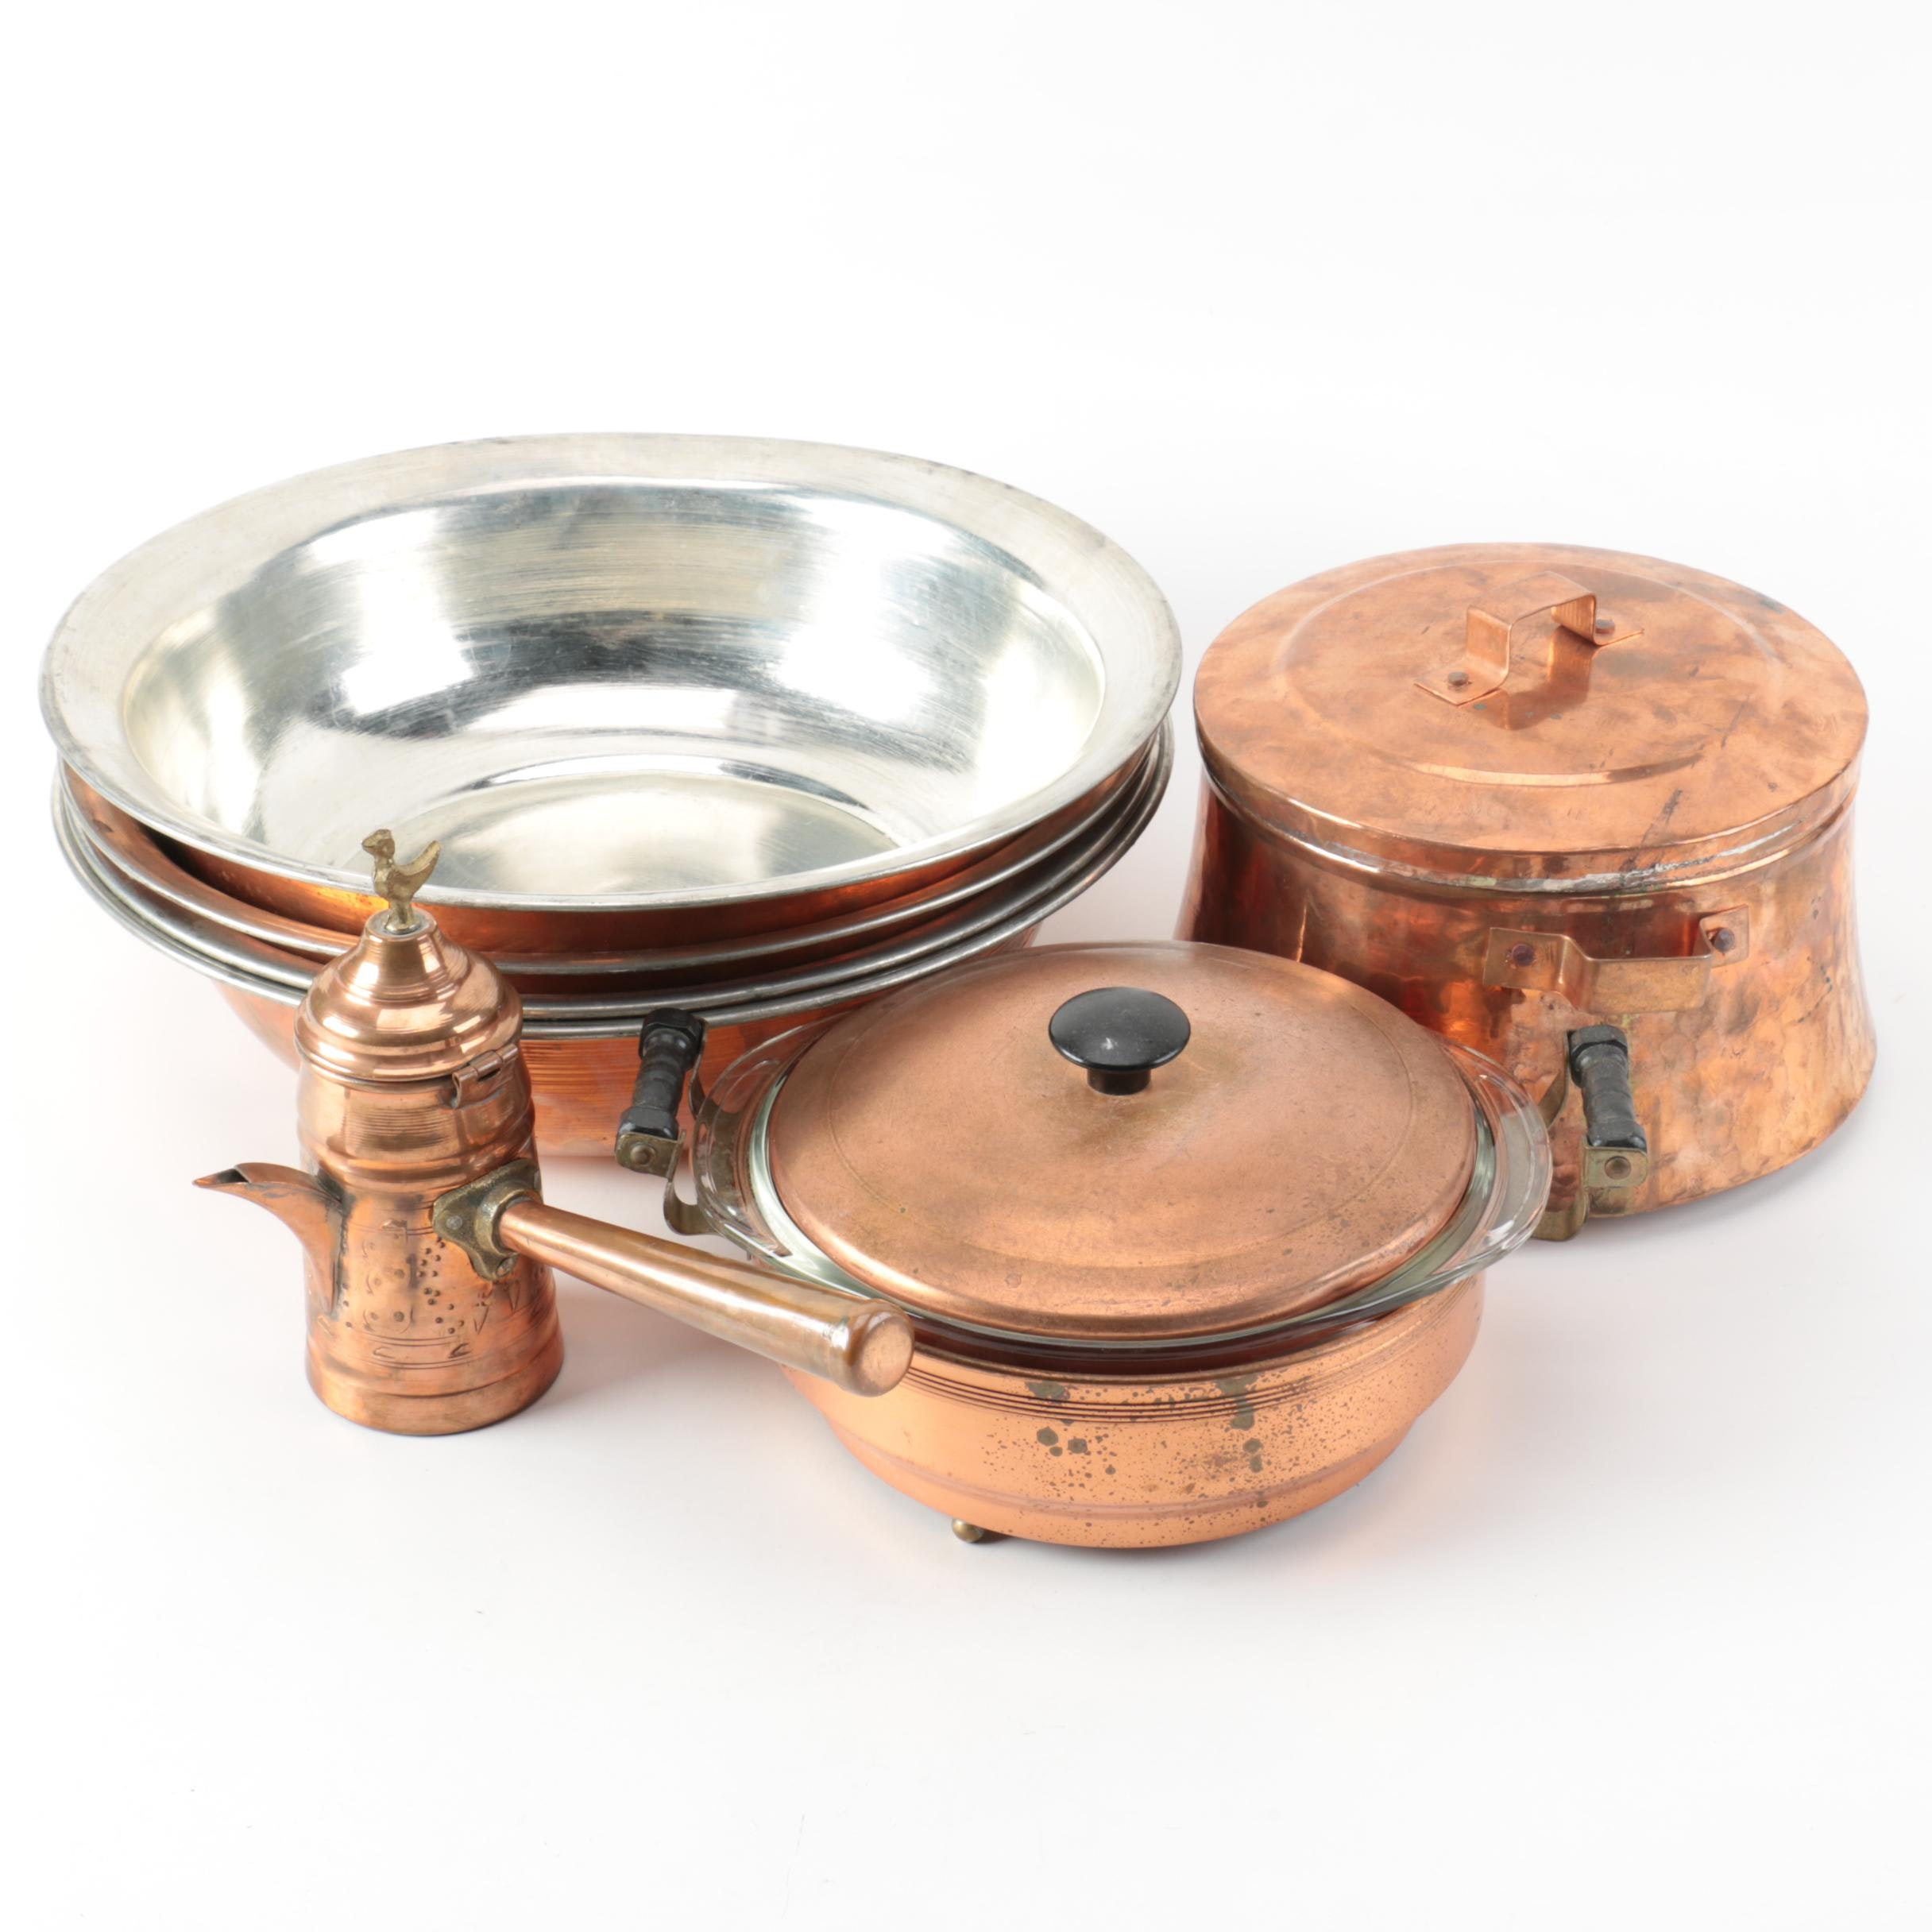 Copper and Aluminum Cookware with Glass Pyrex Dish